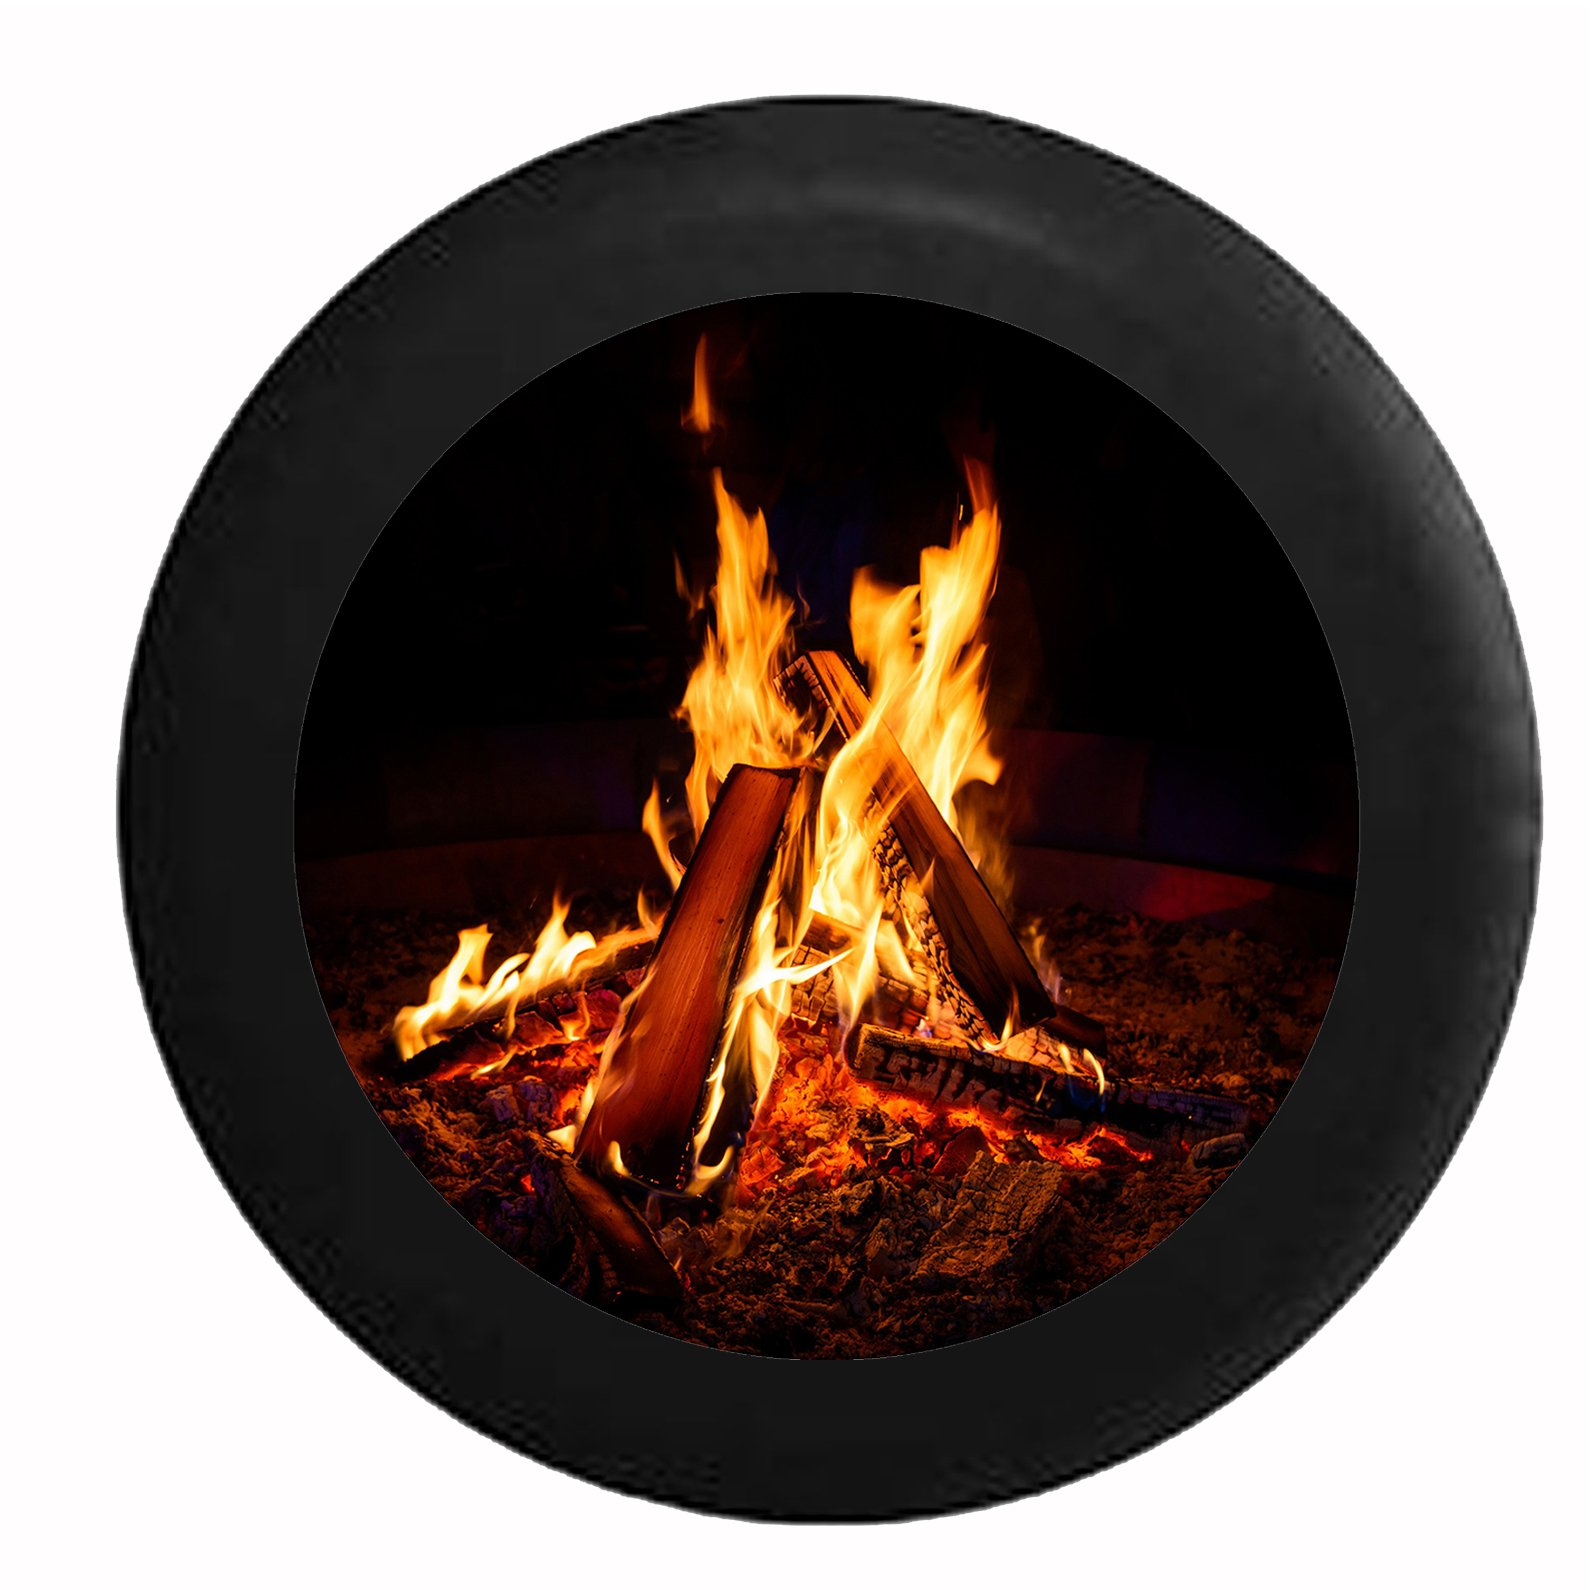 Pike Outdoors Full Color Cracking Campfire with Full Flames Spare Tire Cover fits SUV Camper RV Accessories Black 35 in by Pike Outdoors